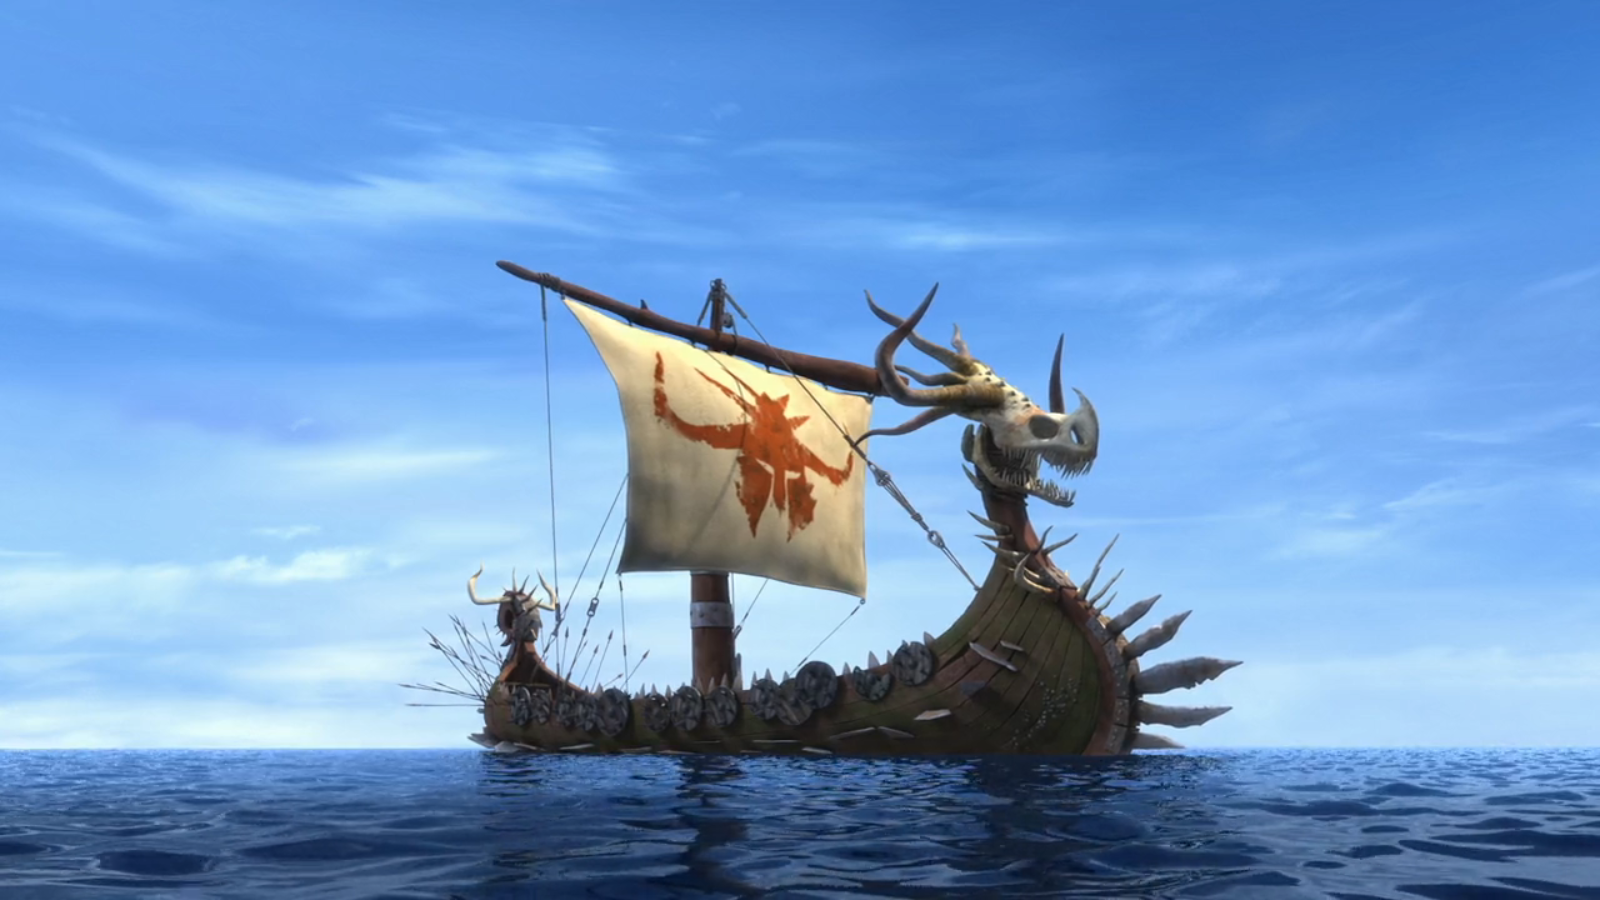 Image savages ship 11g how to train your dragon wiki savages ship 11g ccuart Images